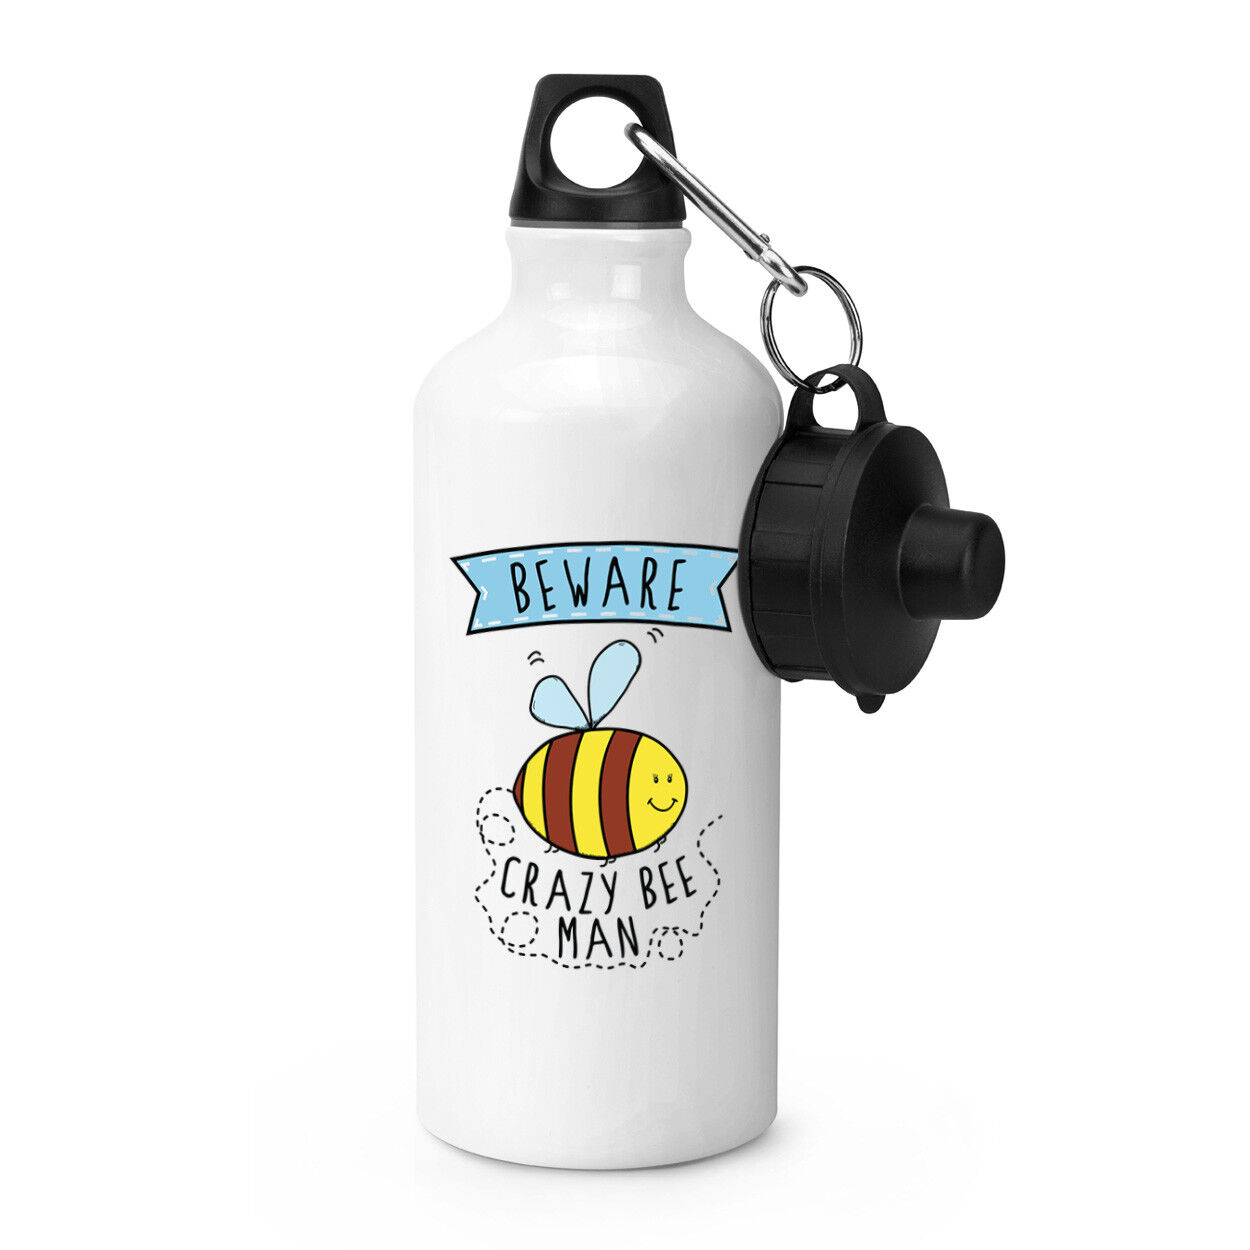 Beware Crazy Bee on Sports verres Bottle Bottle Bottle Camping-Funny Animal Cute Bumble 2026d1